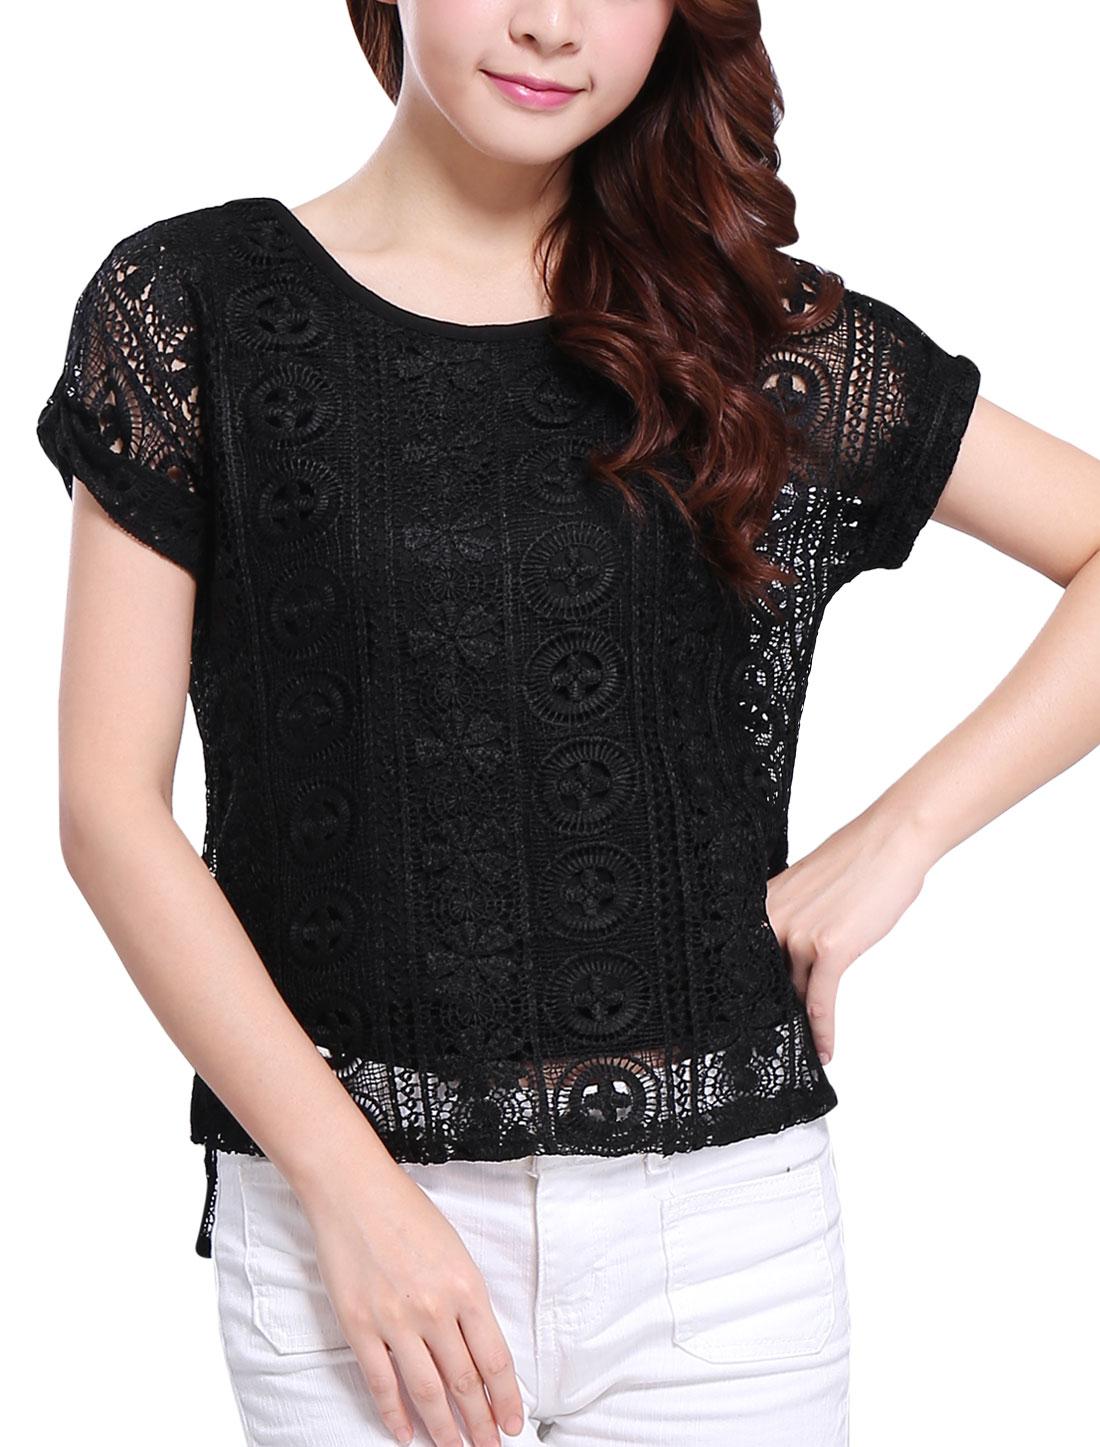 Lady Round Neck Short Batwing Sleeve Crochet Lace Top Black XS